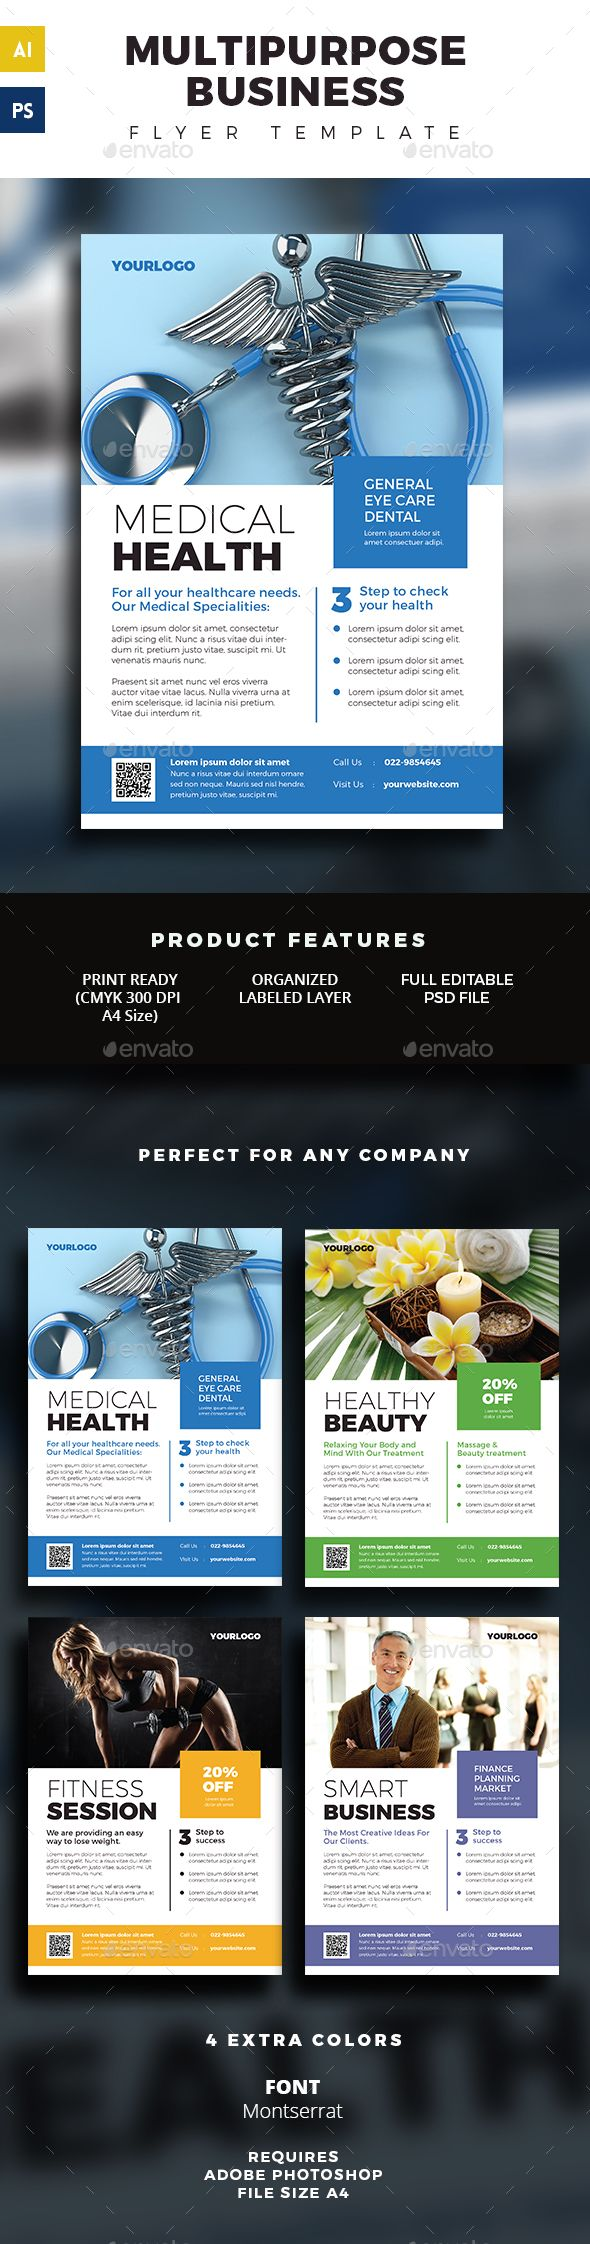 Multipurpose Business Flyer Template — Photoshop PSD #real estate #business • Available here → https://graphicriver.net/item/multipurpose-business-flyer-template/16349075?ref=pxcr